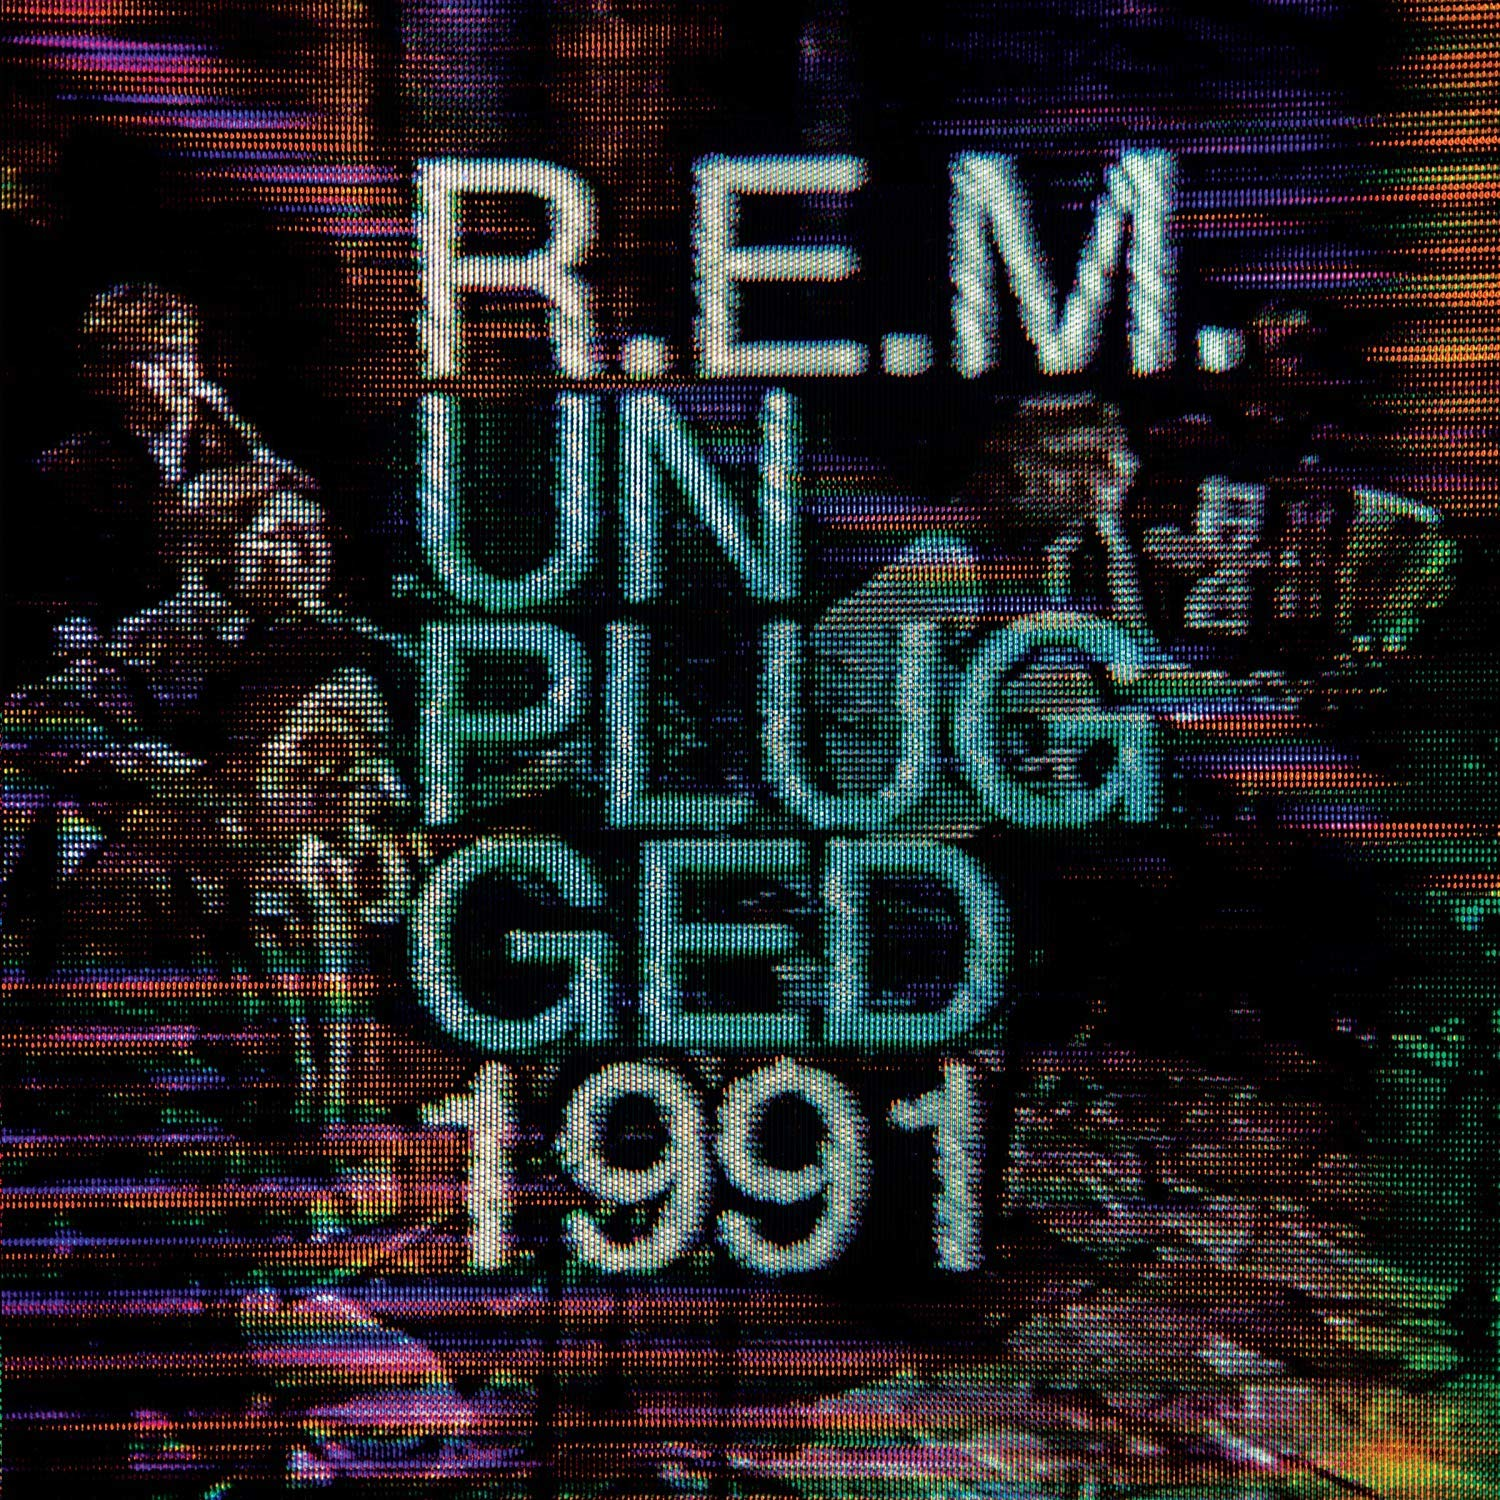 Album cover for Unplugged 1991 by R.E.M.